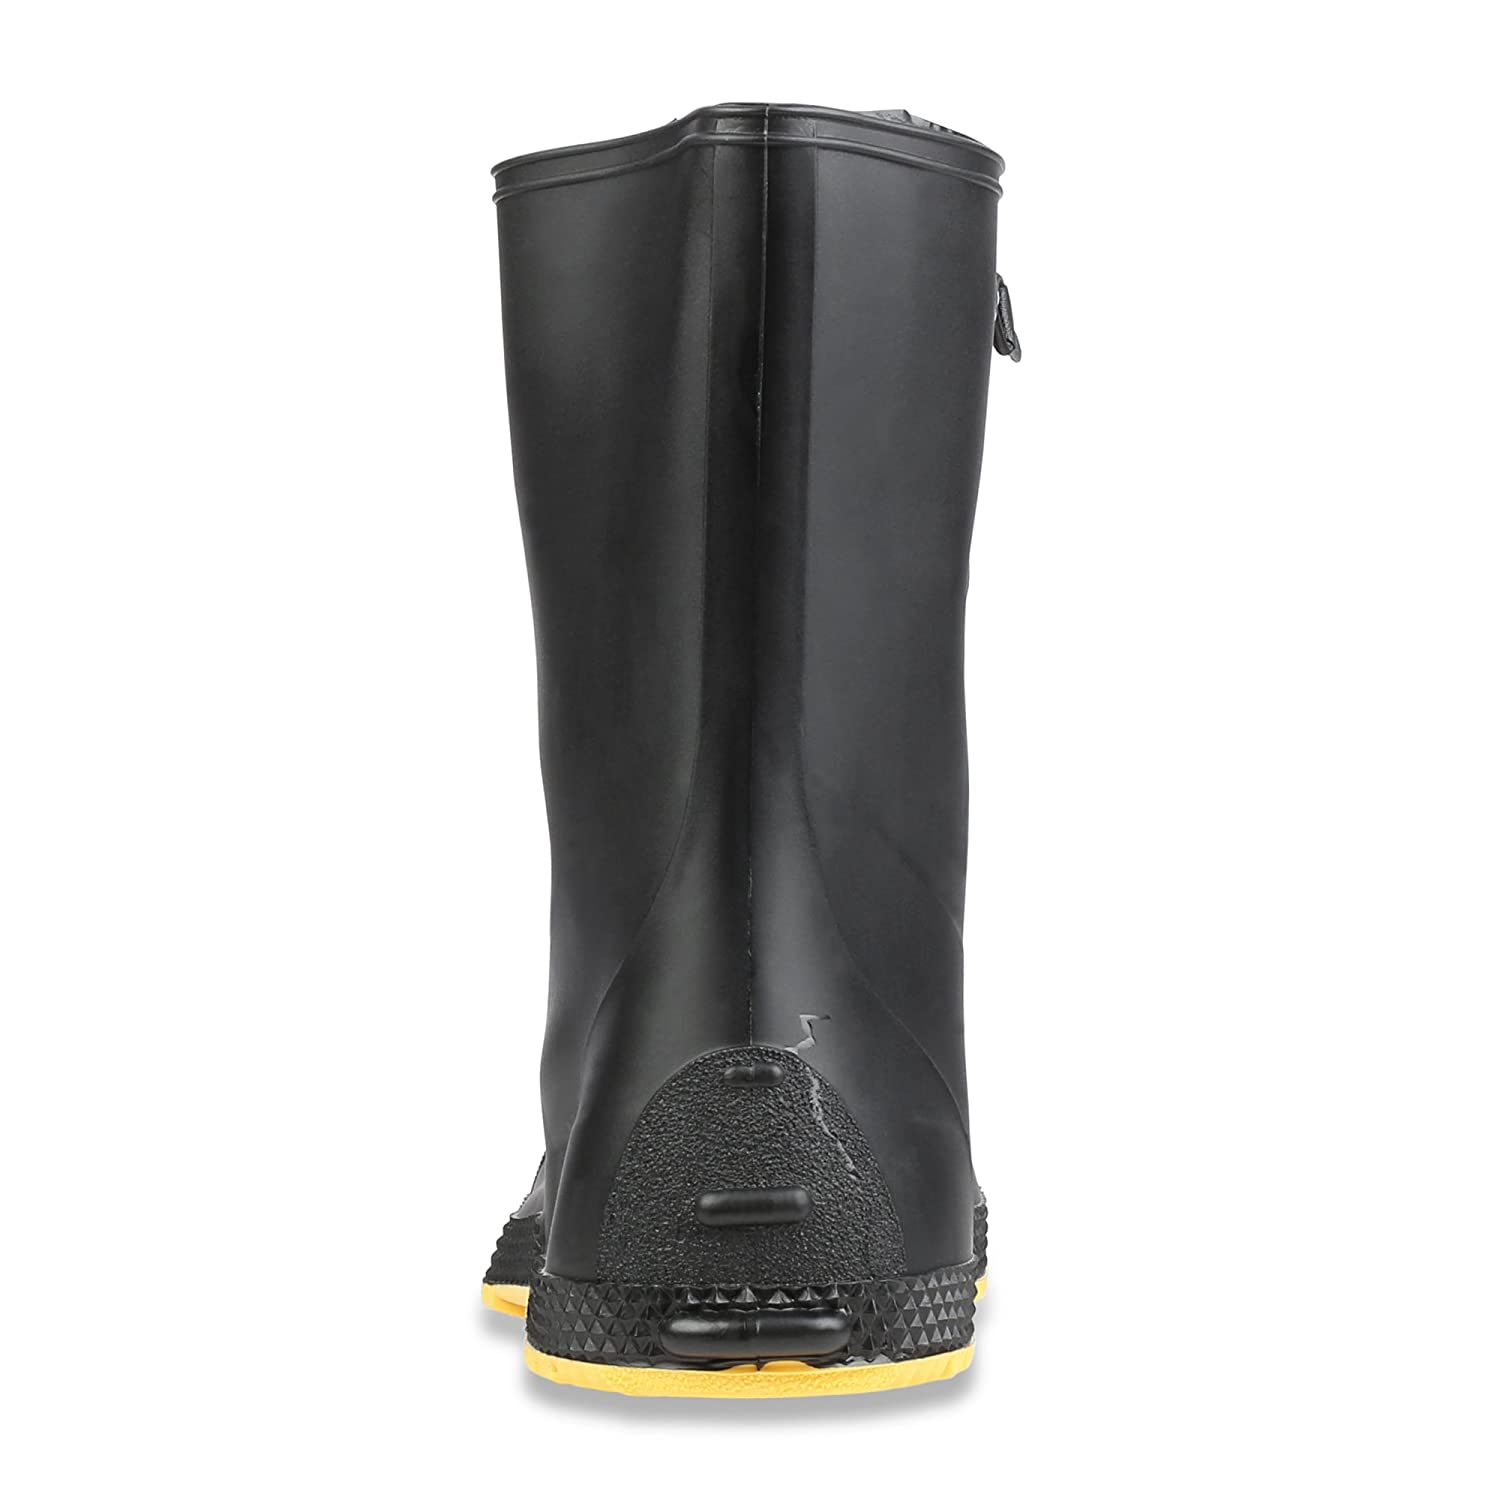 11001-Bagged Servus SuperFit 12 PVC Dual-Compound Mens Overboots Black /& Yellow Sperian Protection Group 11001-BLM-XSM